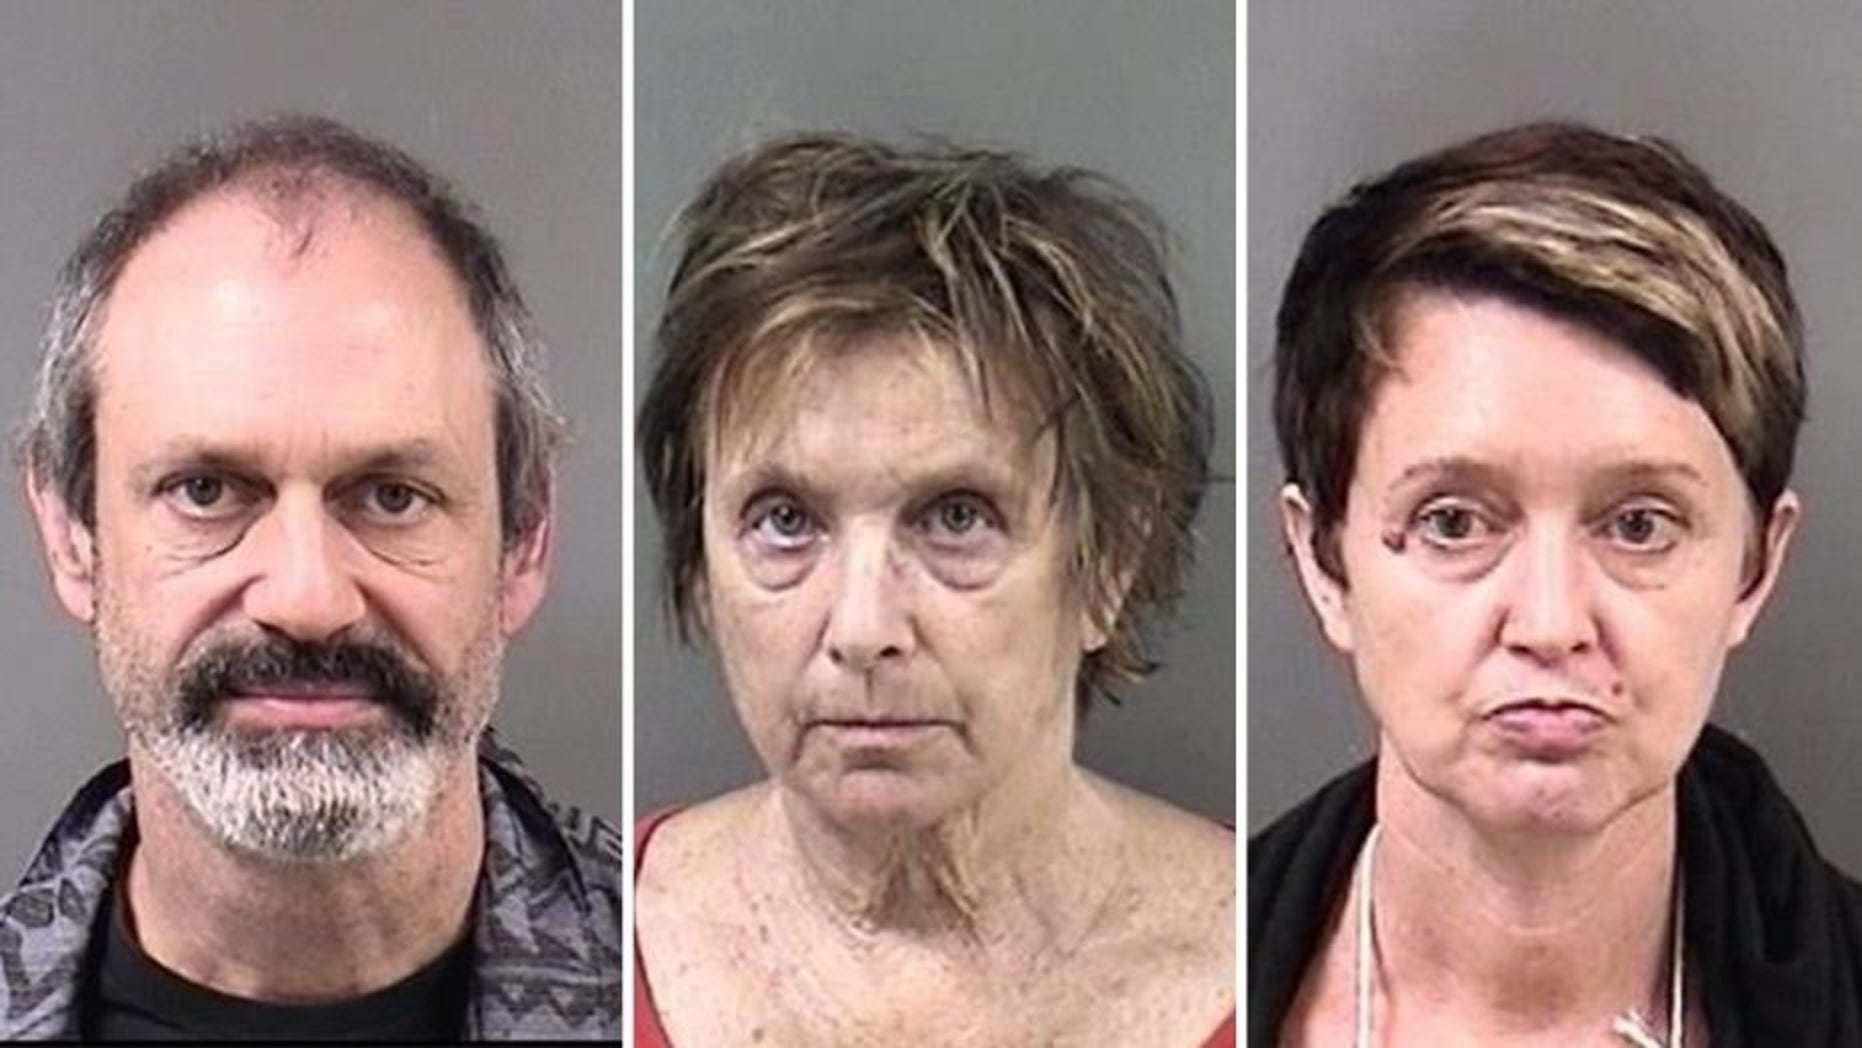 Berkeley Police announced the arrests on Sunday of three protesters on weapon possession charges: (left to right) Jason Wallach, 41, Kate Brenner, 69, and Kristen Edith Koster, 50.